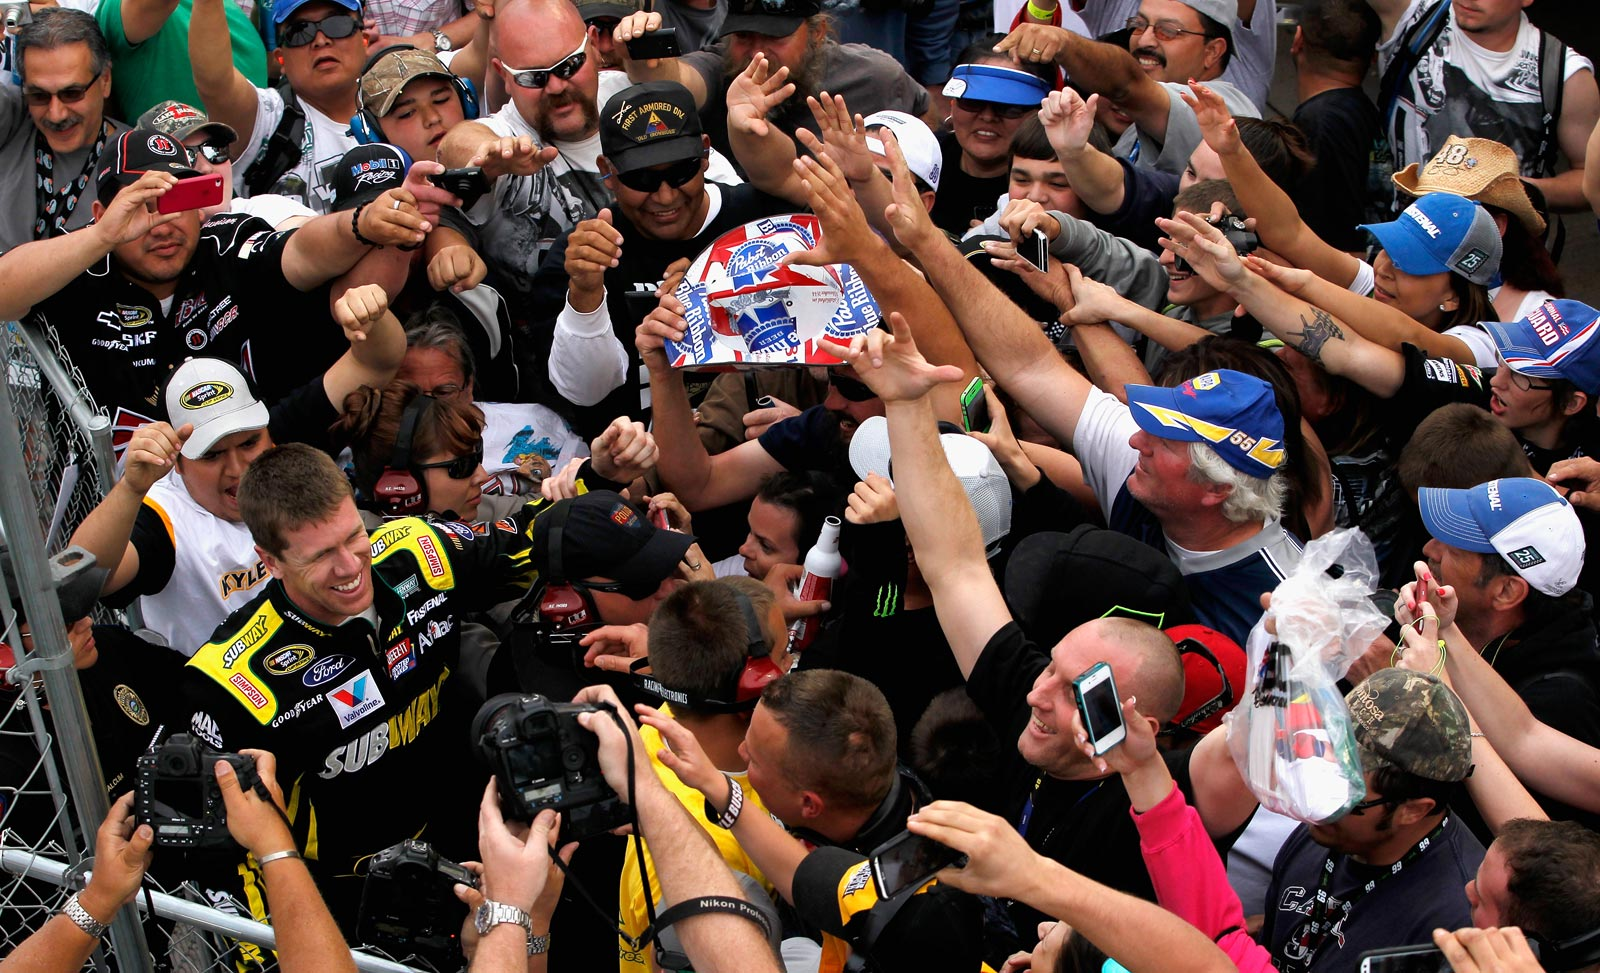 2013-Subway-Fresh-Fit-500-Phoenix-030313-Carl-Edwards-Crowd-Win